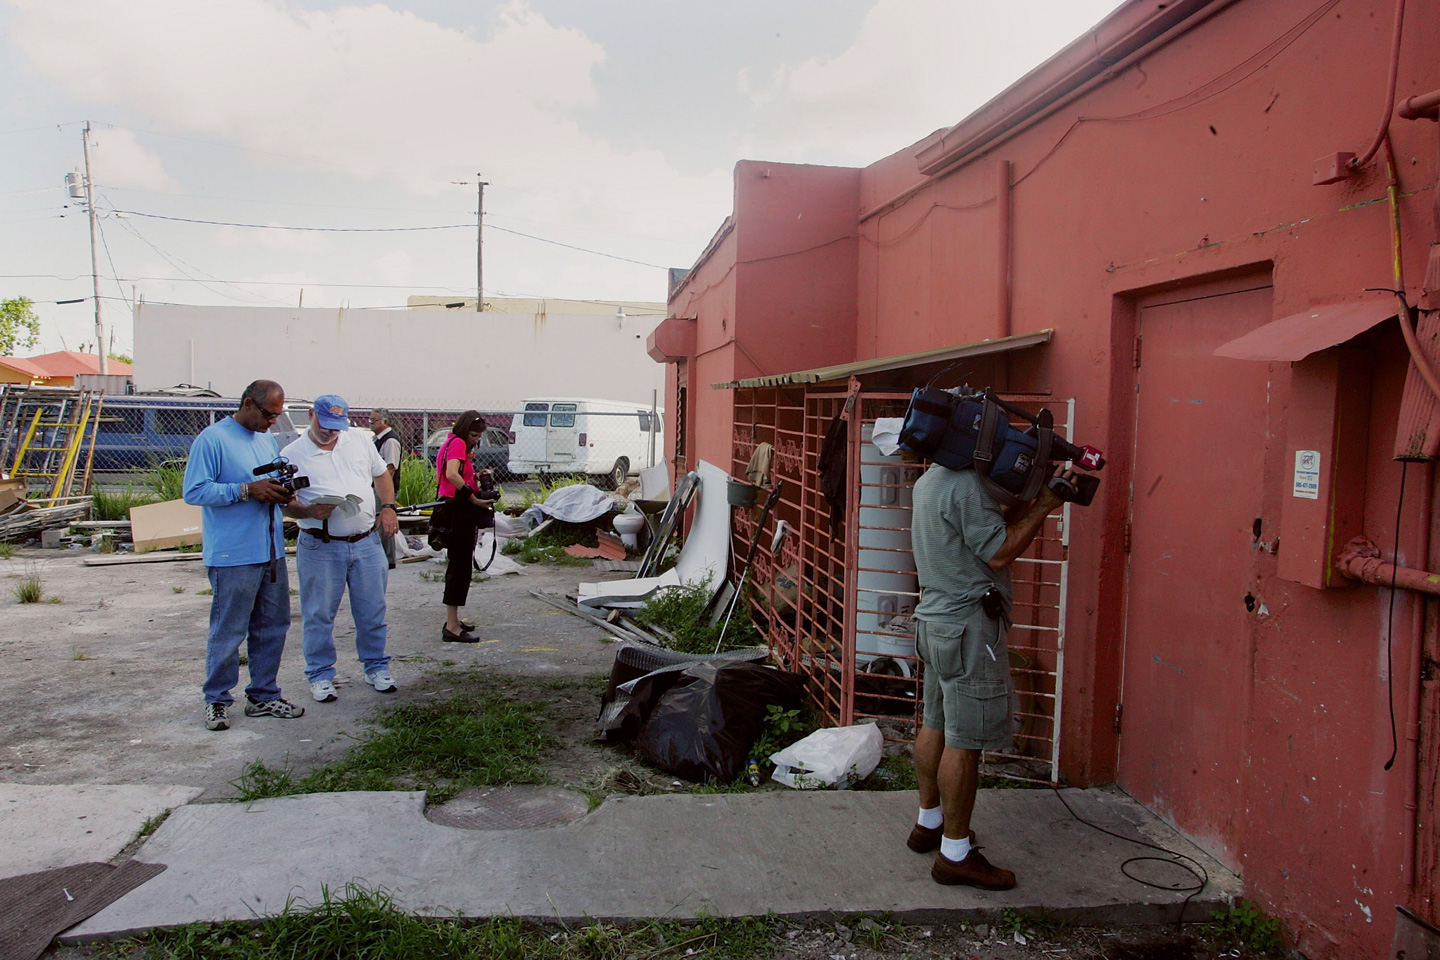 MIAMI - JUNE 23:  Media stands outside the warehouse that the FBI raided last evening June 23, 2006 in the Liberty CIty neighborhood of Miami, Florida. The U.S. Justice Department was expected to provide details of an alleged plot to attack the Chicago Sears Tower, in which at least seven people who were staying in the warehouse were arrested in Miami.  (Photo by Joe Raedle/Getty Images)